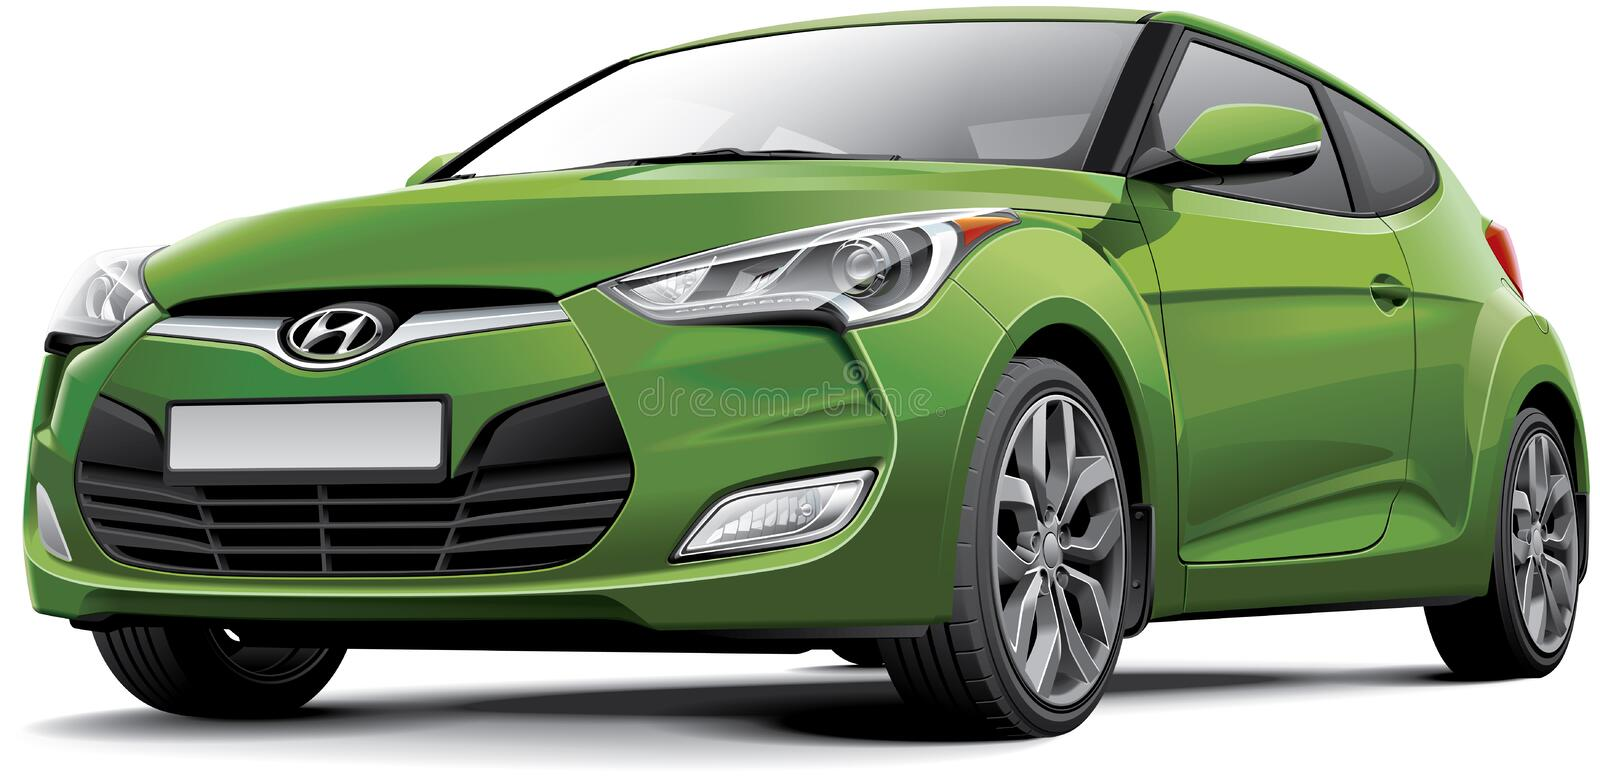 Hyundai Veloster. High quality photorealistic illustration of Korean compact kammback - Hyundai Veloster, isolated on white background. File contains gradients